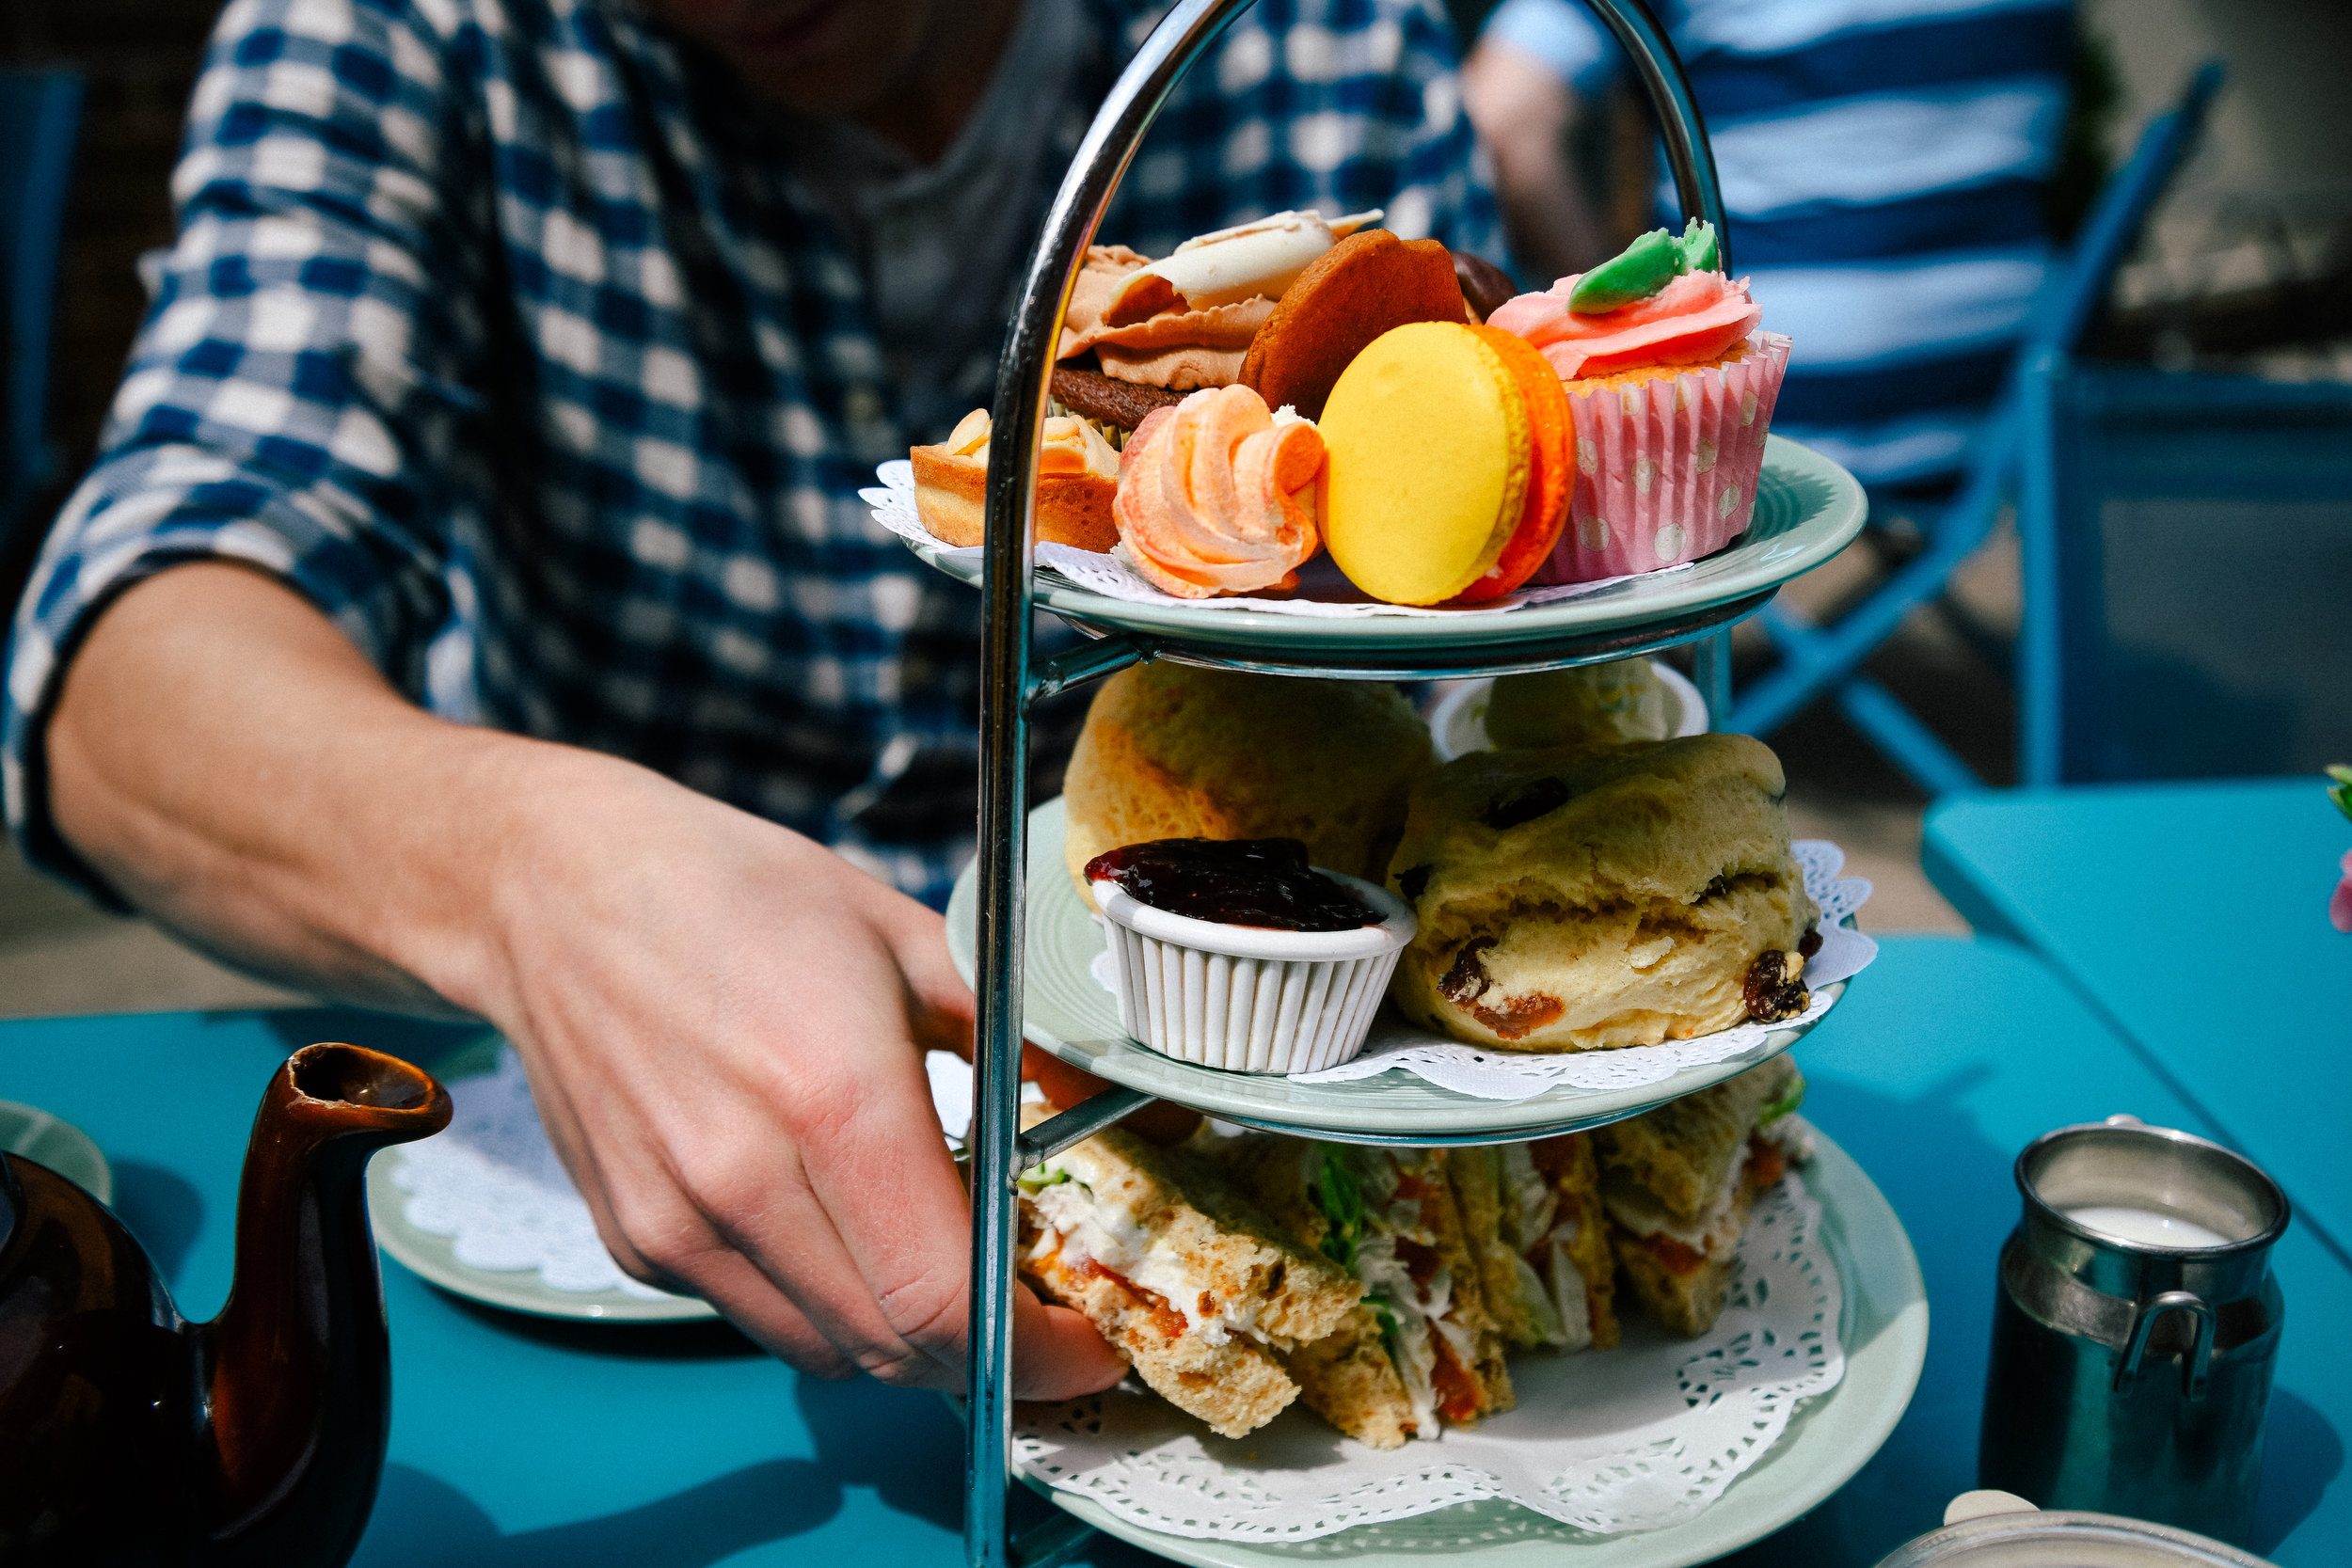 Beautiful afternoon tea from the Fourteas in Stratford-upon-Avon